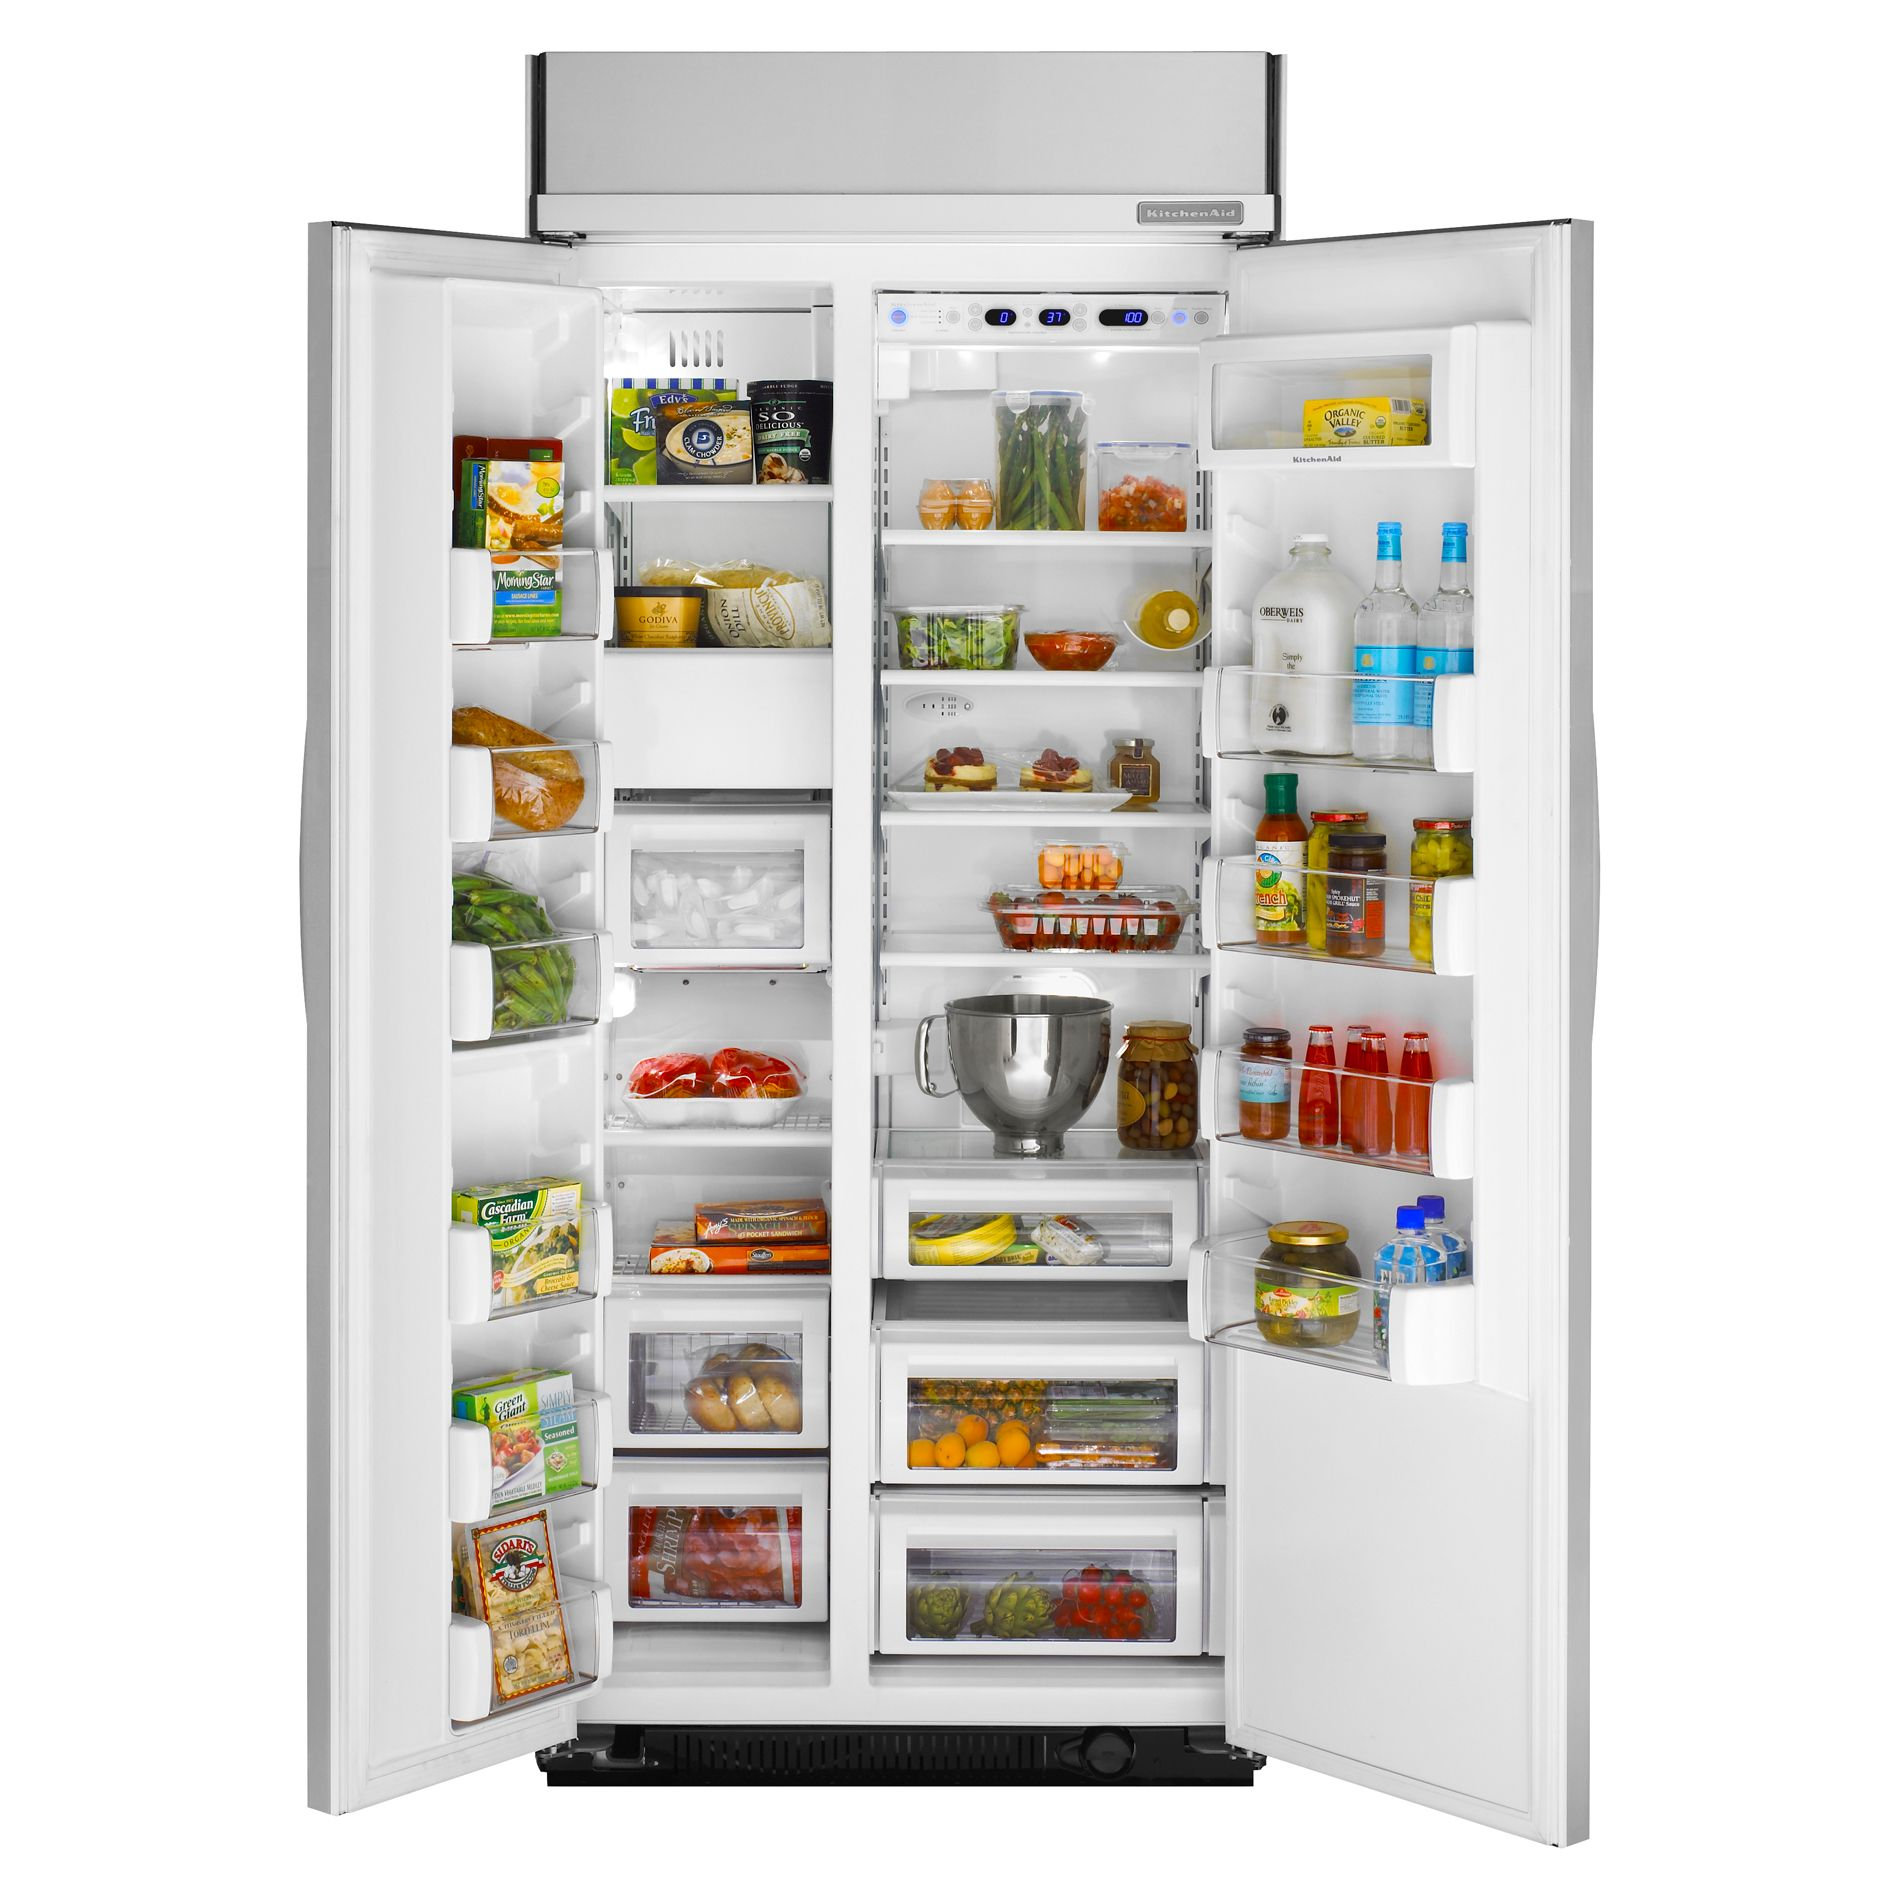 KitchenAid 25.3 cu. ft. Non-Dispensing Built-In Side-By-Side Refrigerator